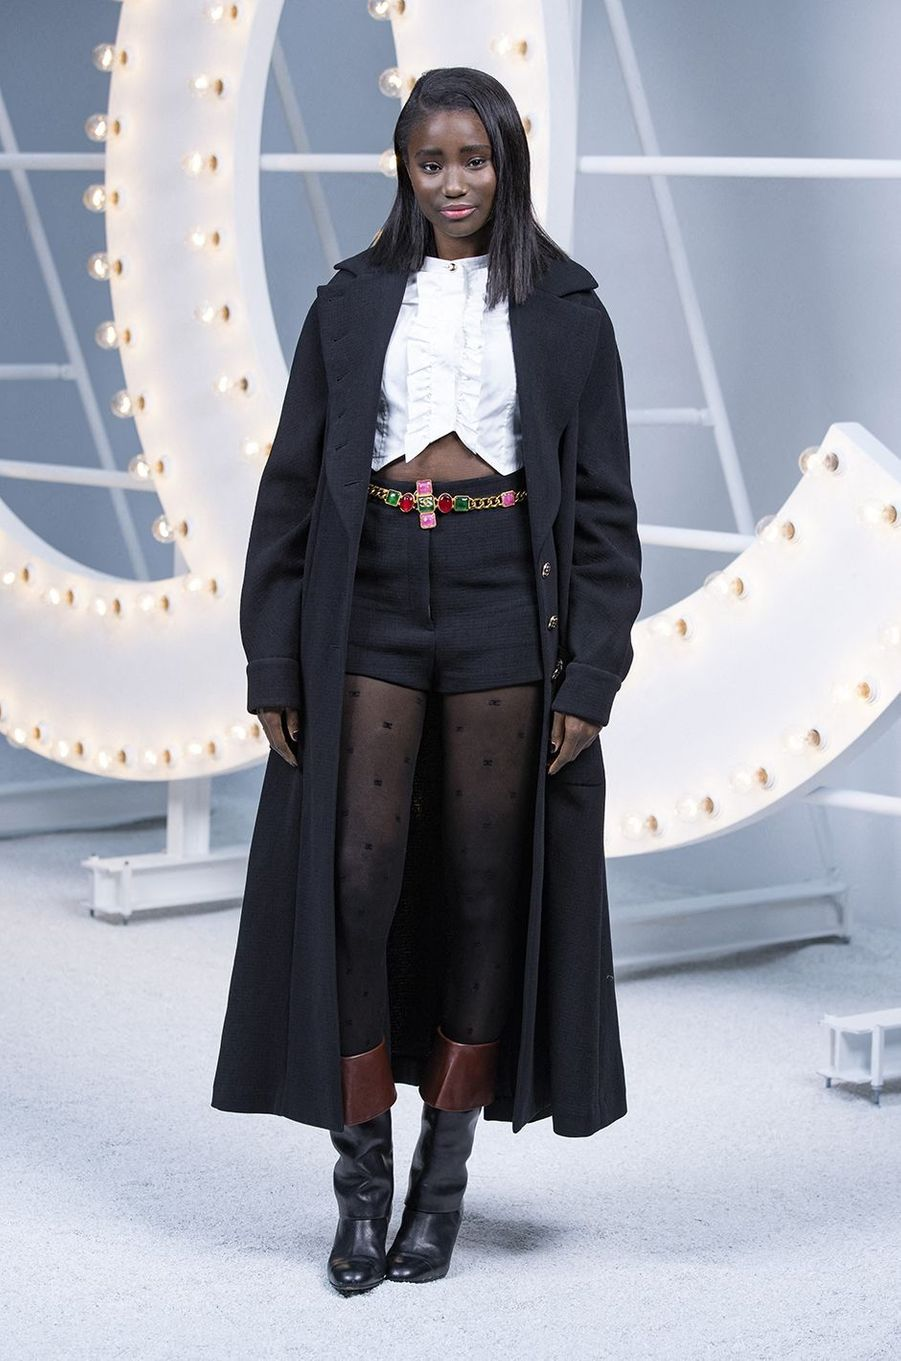 Karidja Touré au défilé Chanel lors de la Fashion Week à Paris le 6 octobre 2020